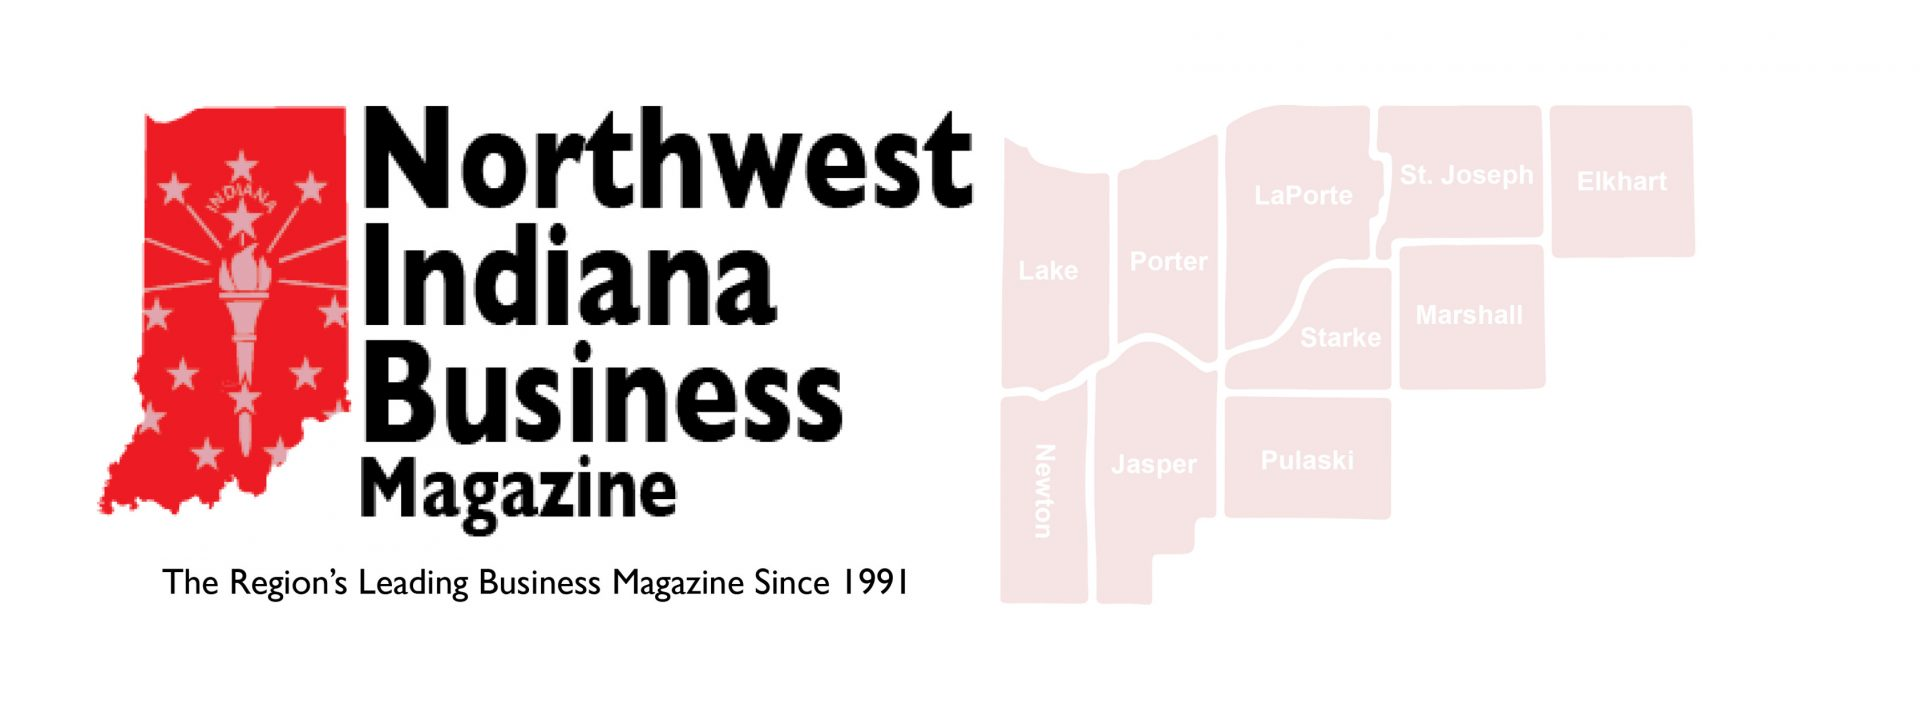 Northwest Indiana Business Magazine Features DOJO